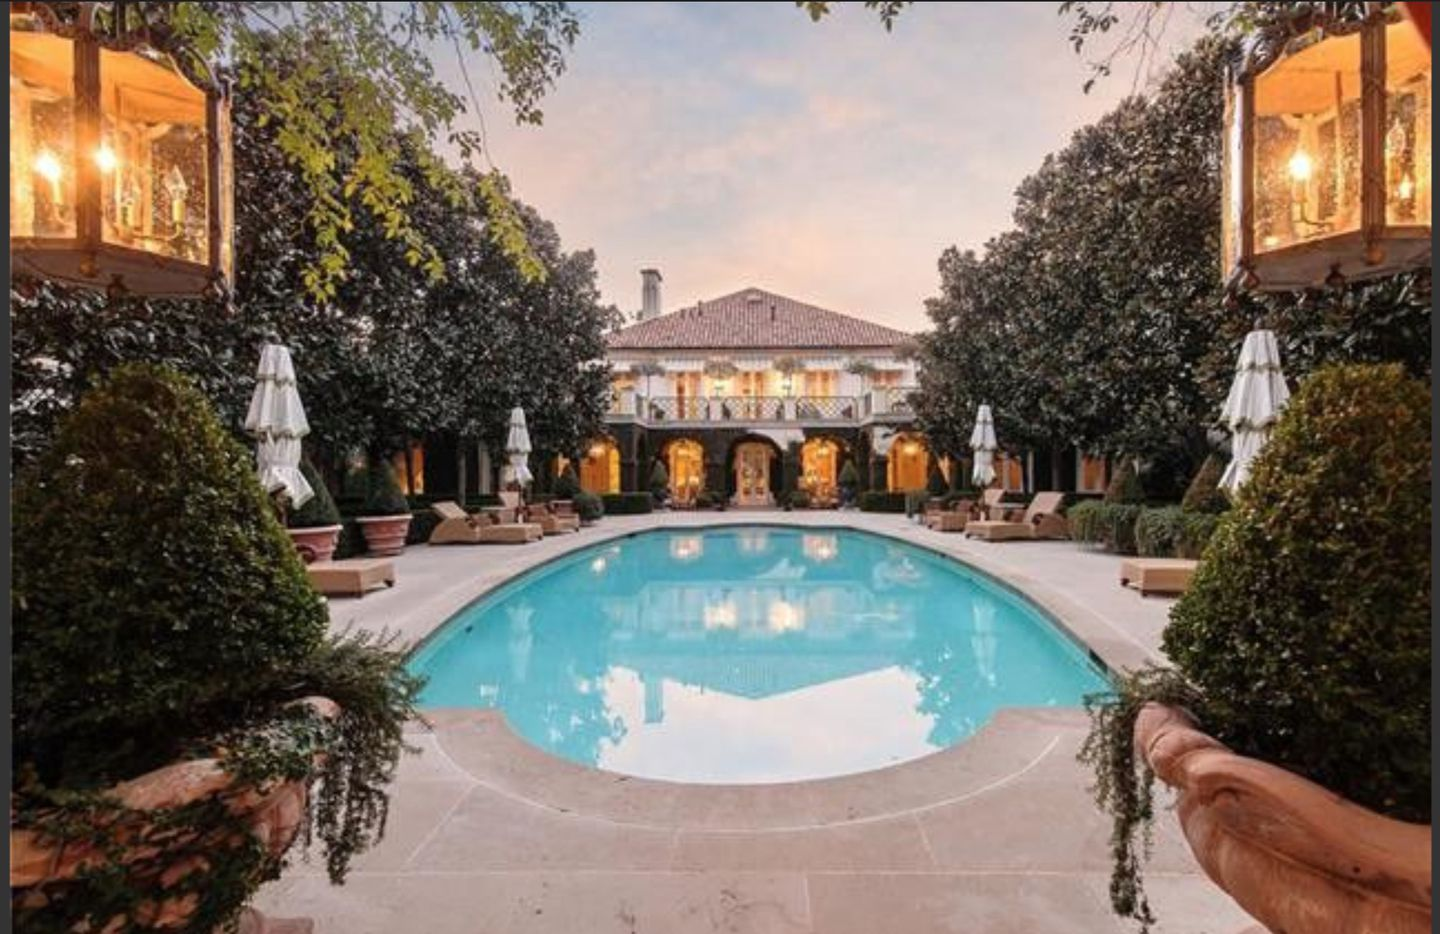 Oilman T. Boone Pickens' house is on about an acre.